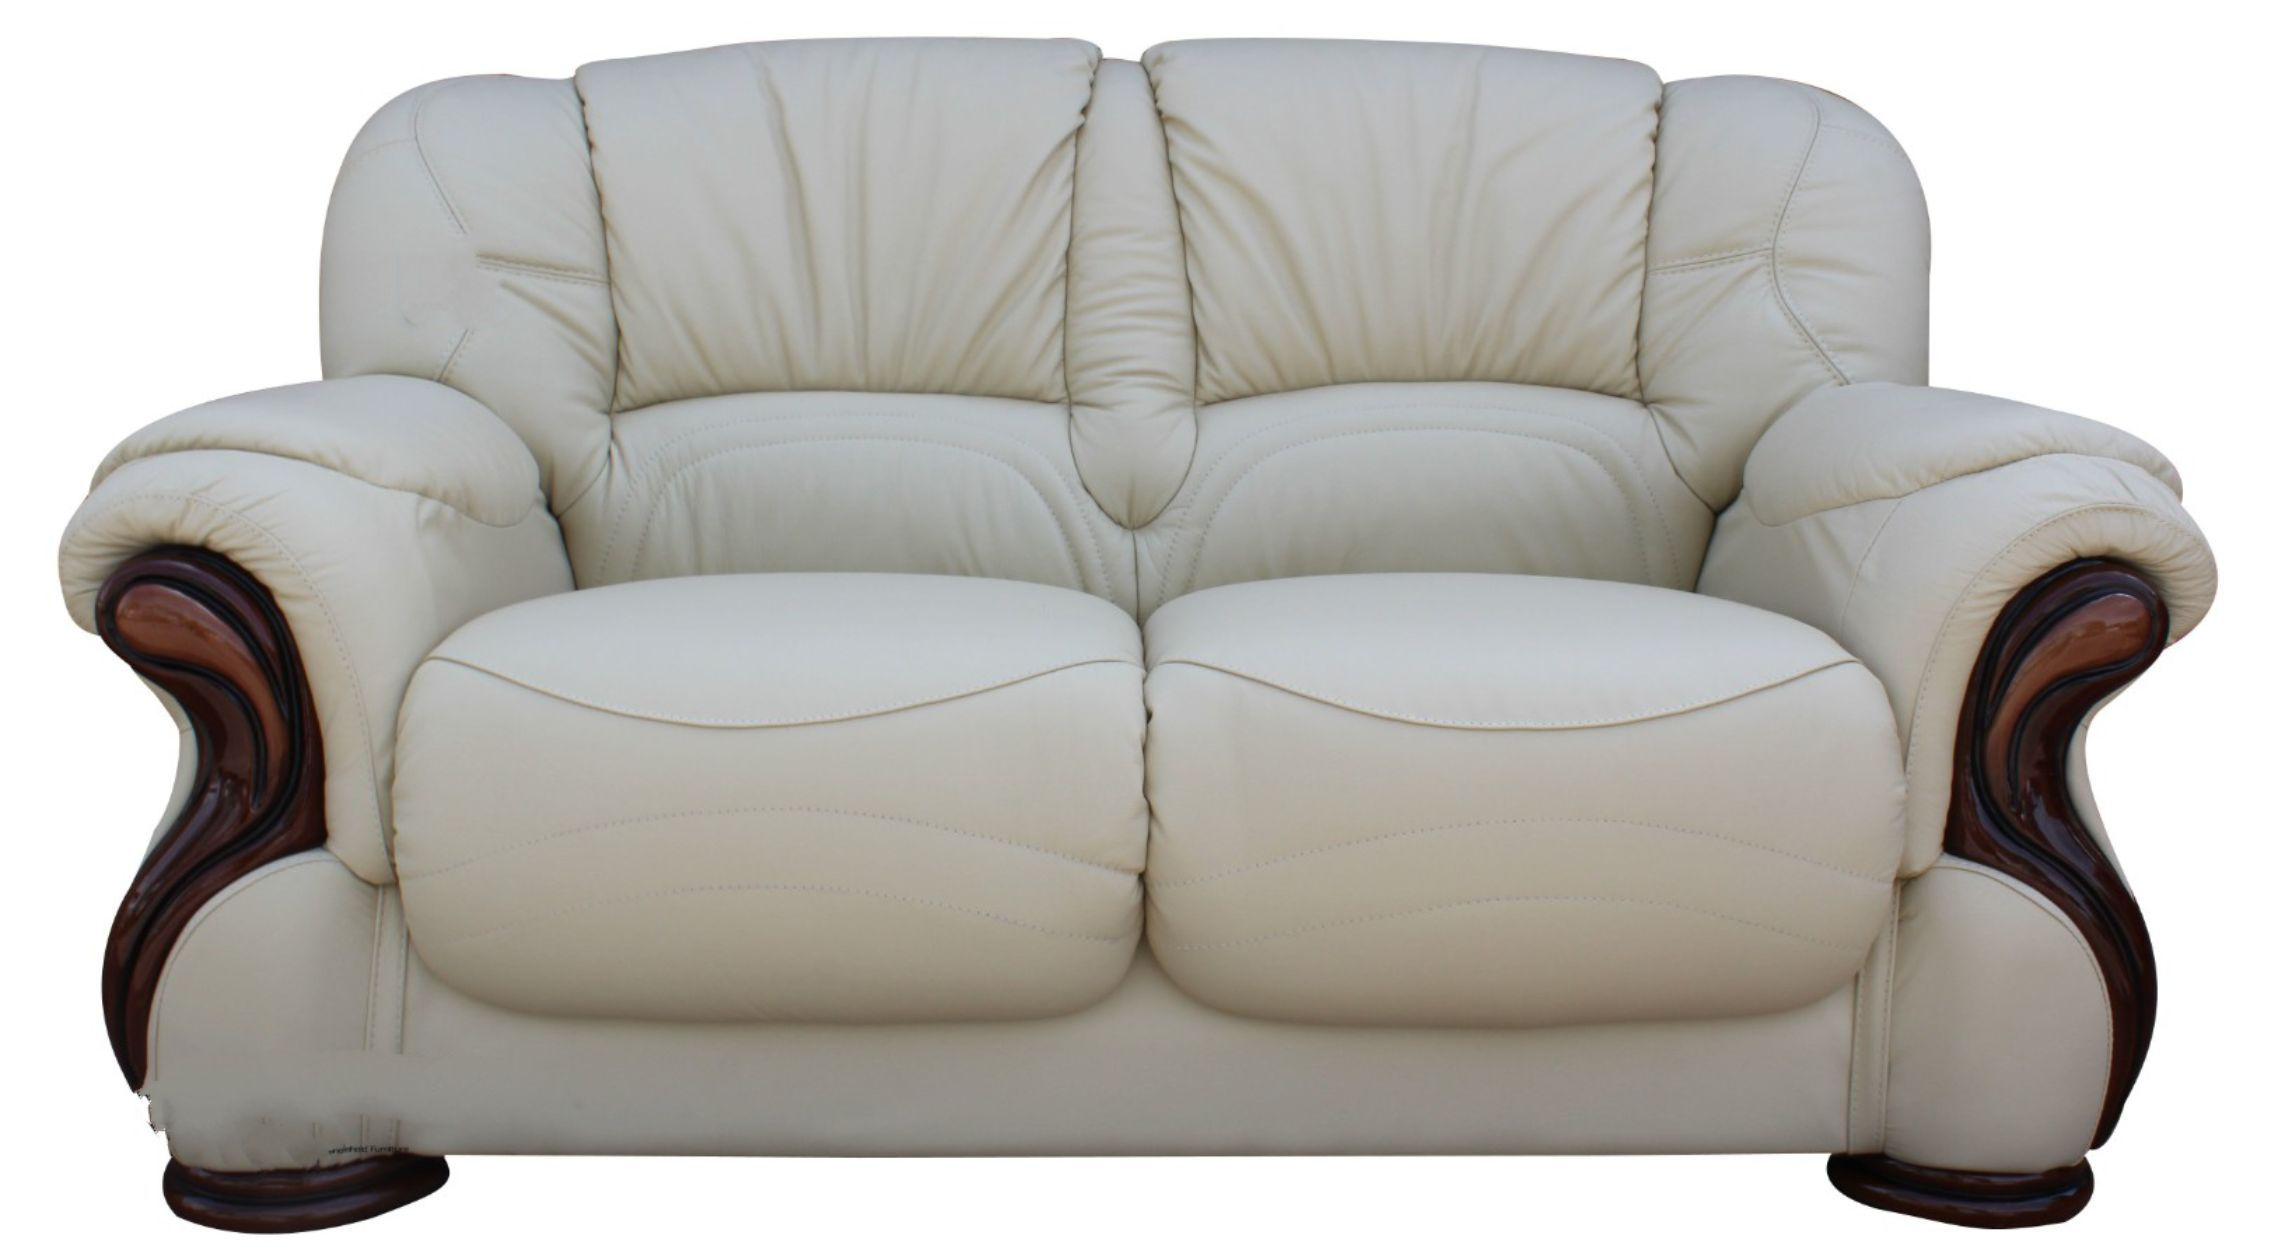 There are two options for making your own leather furnitu. Susanna Italian Leather 2 Seater Sofa Settee Cream Offer ...